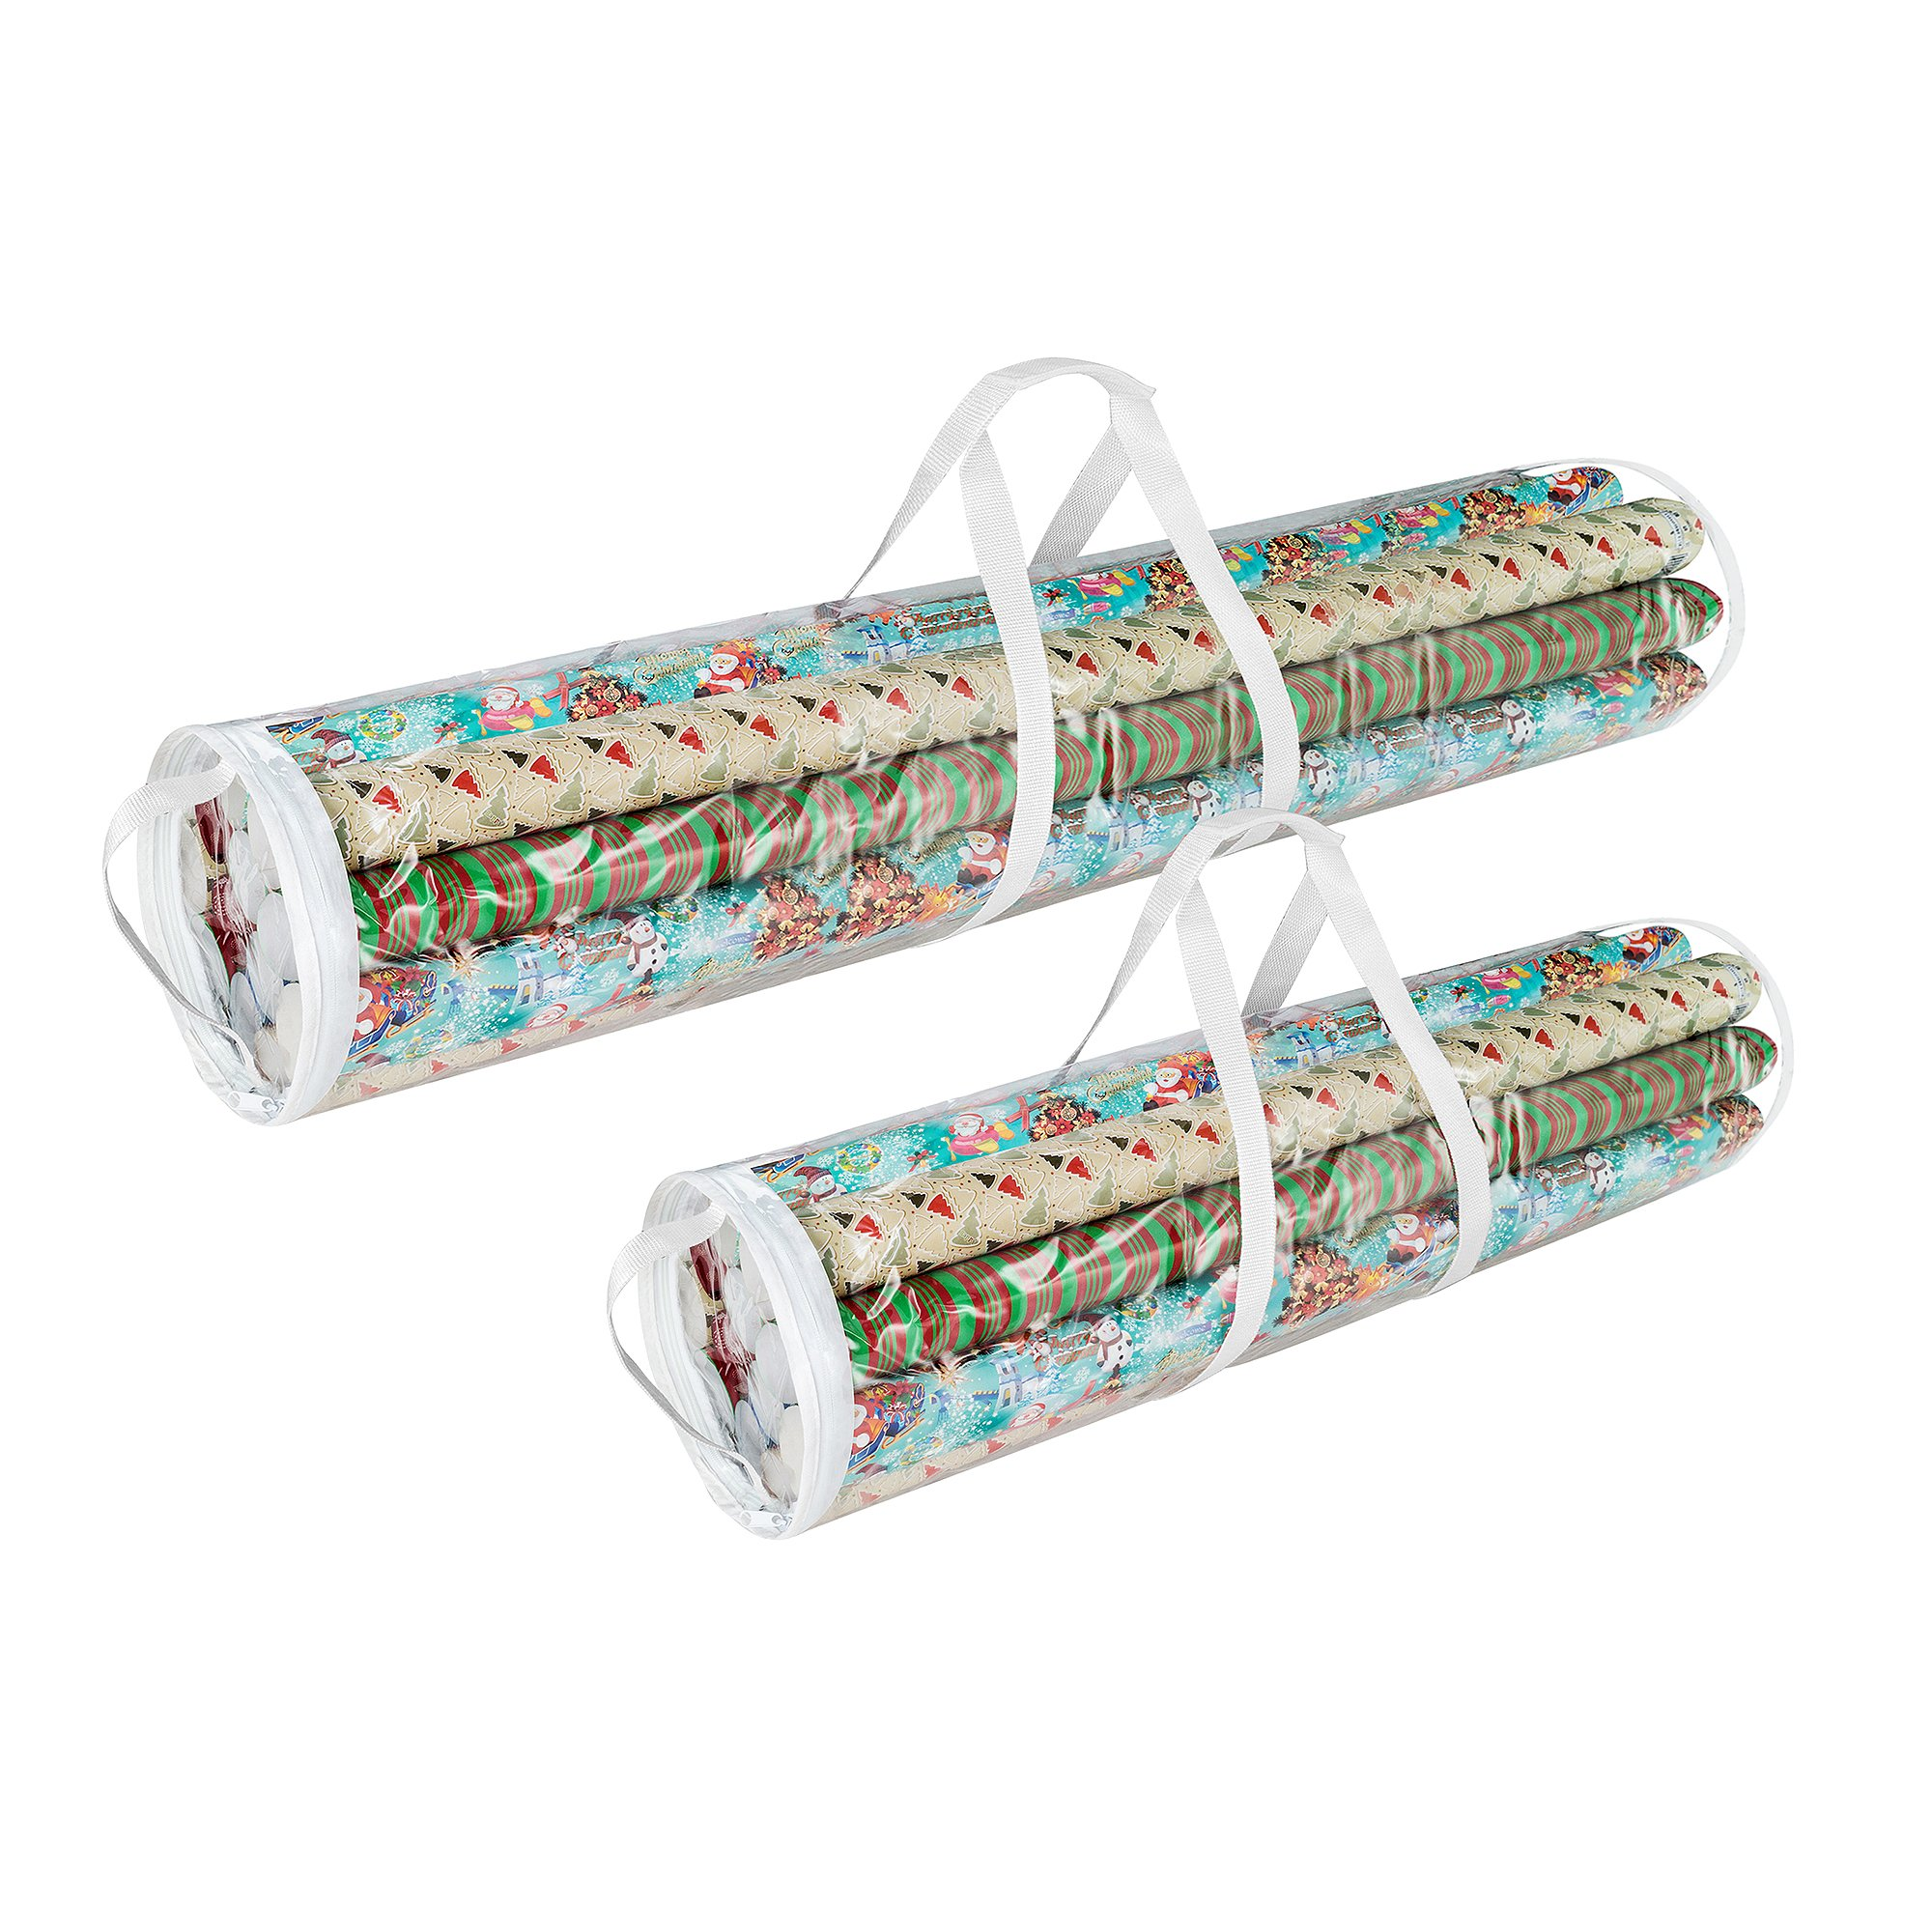 Elf Stor 798976 Christmas Birthday Holiday Storage Set of 2 | Holds 40'' & 31'' Wrapping Paper Rolls, One Bag for Each, 1 Pack Clear